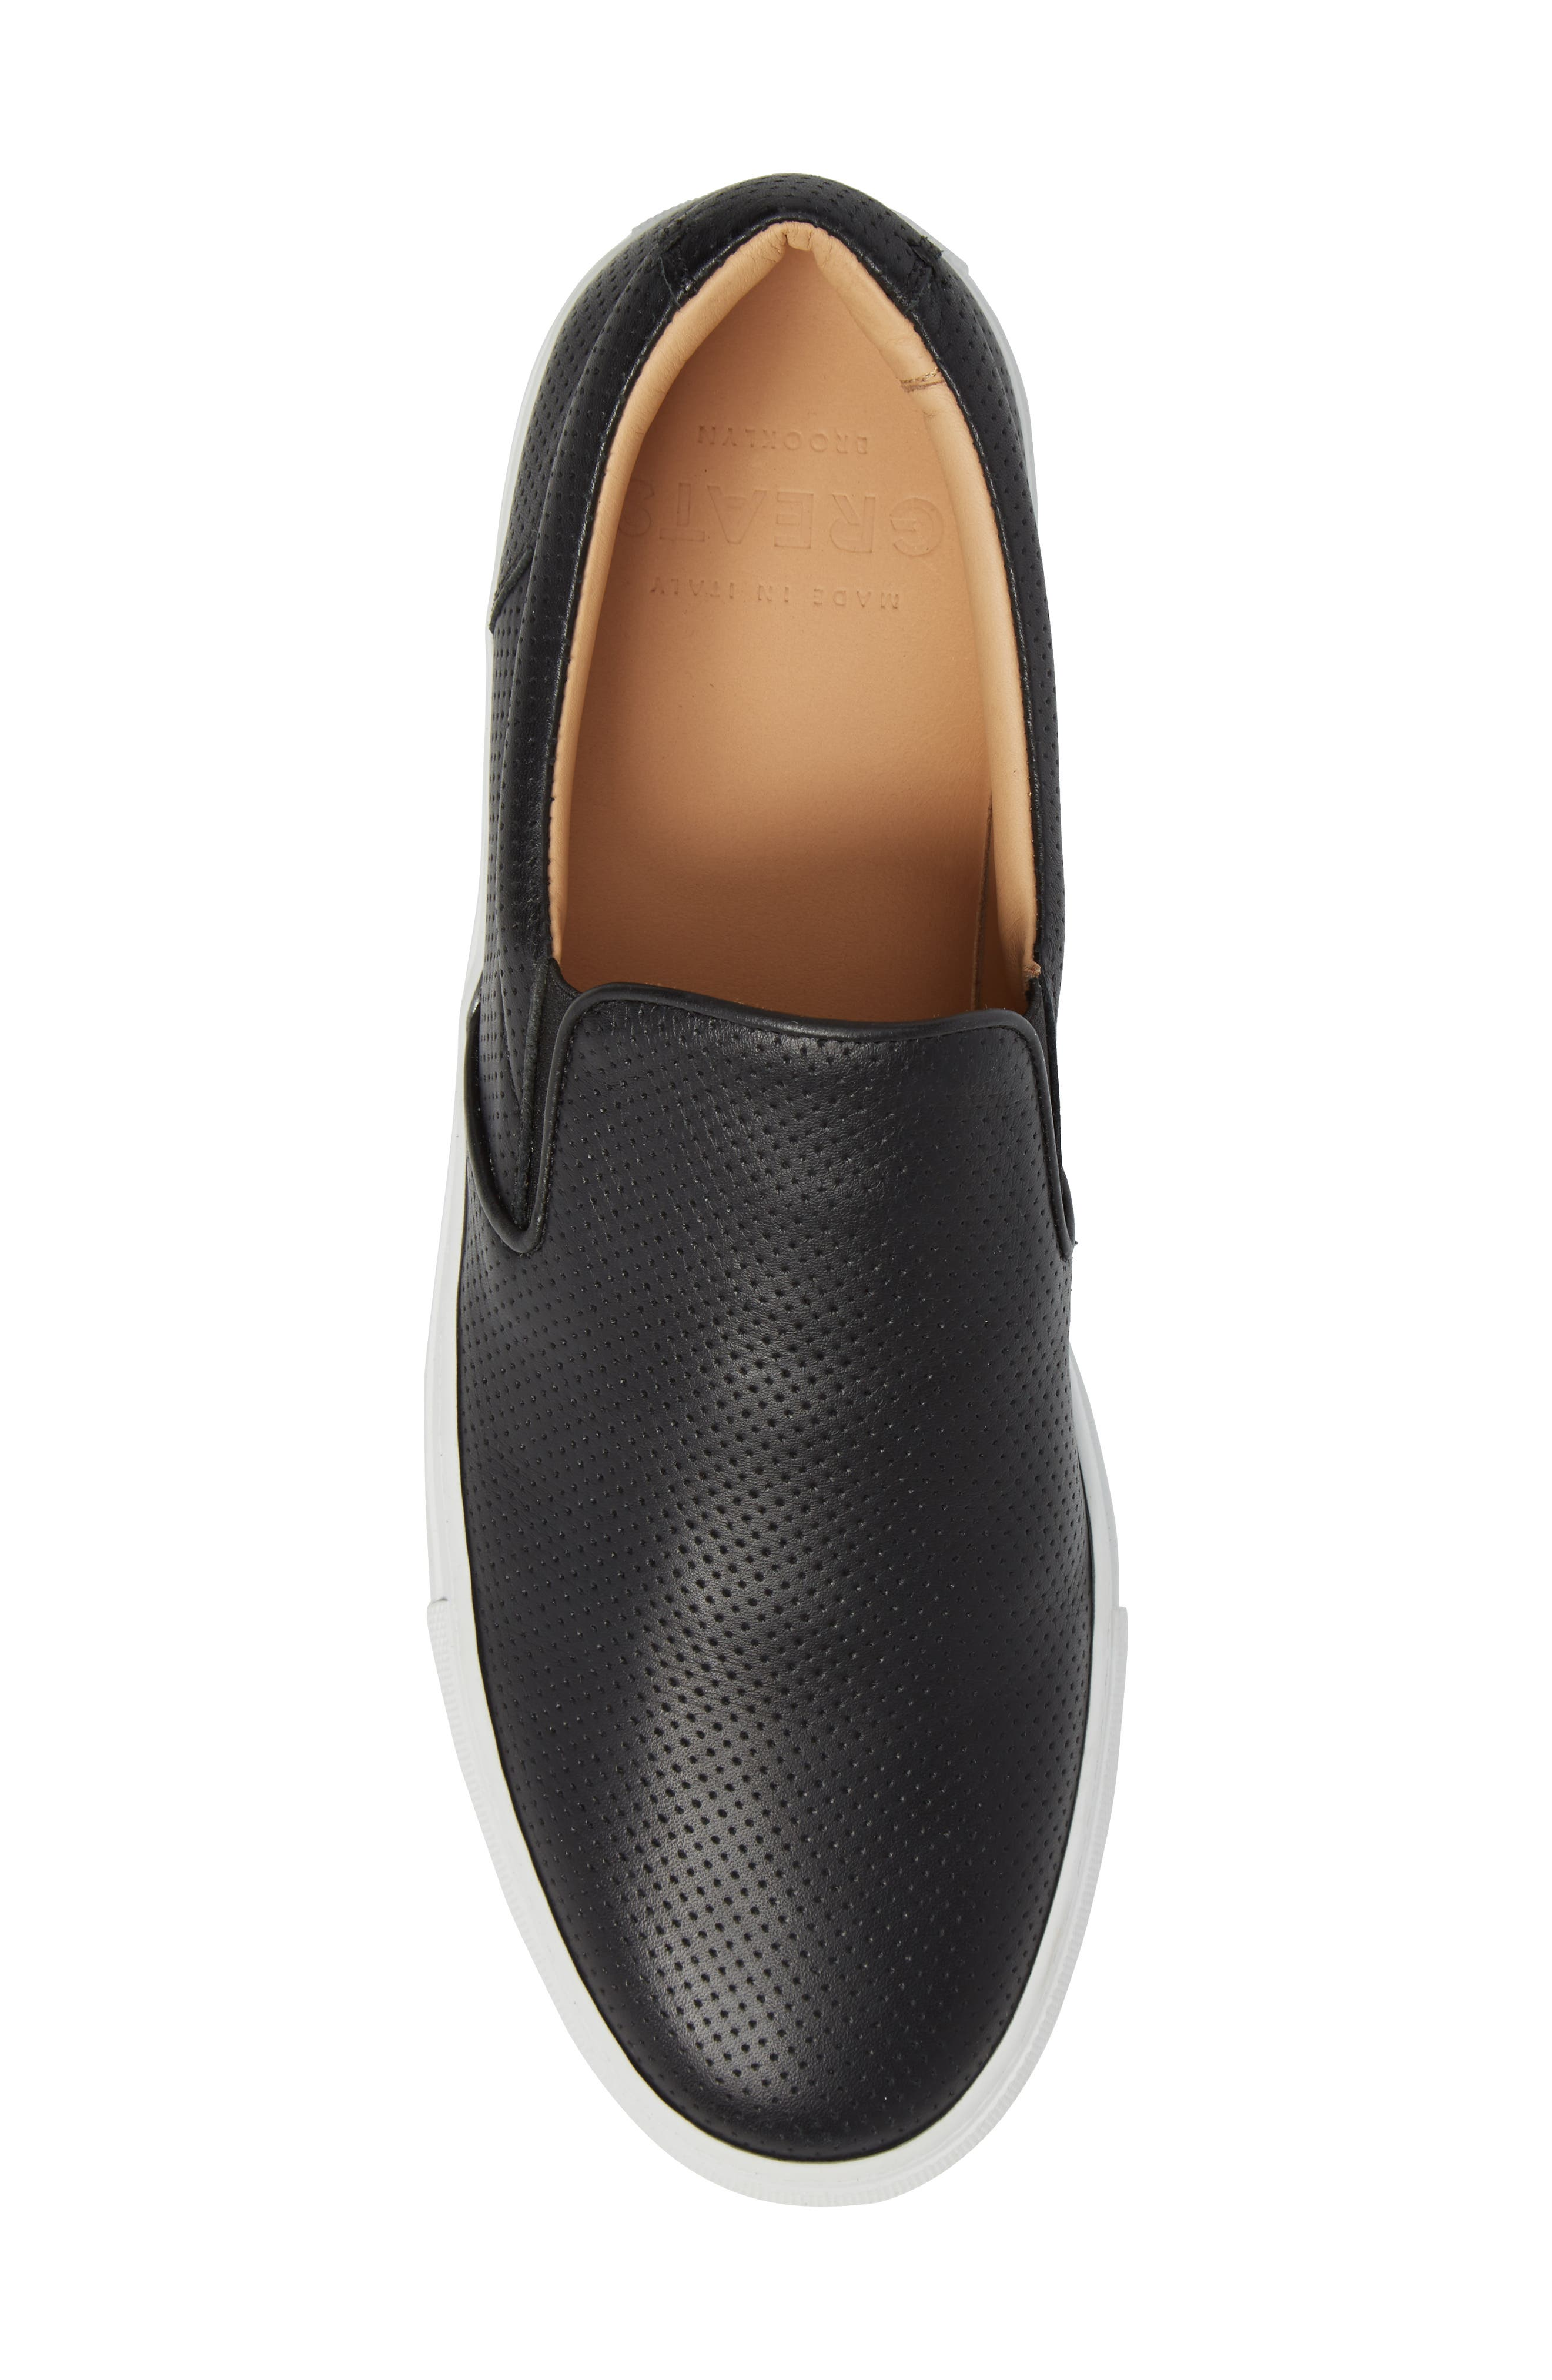 Wooster Slip-On Sneaker,                             Alternate thumbnail 5, color,                             BLACK PERFORATED LEATHER